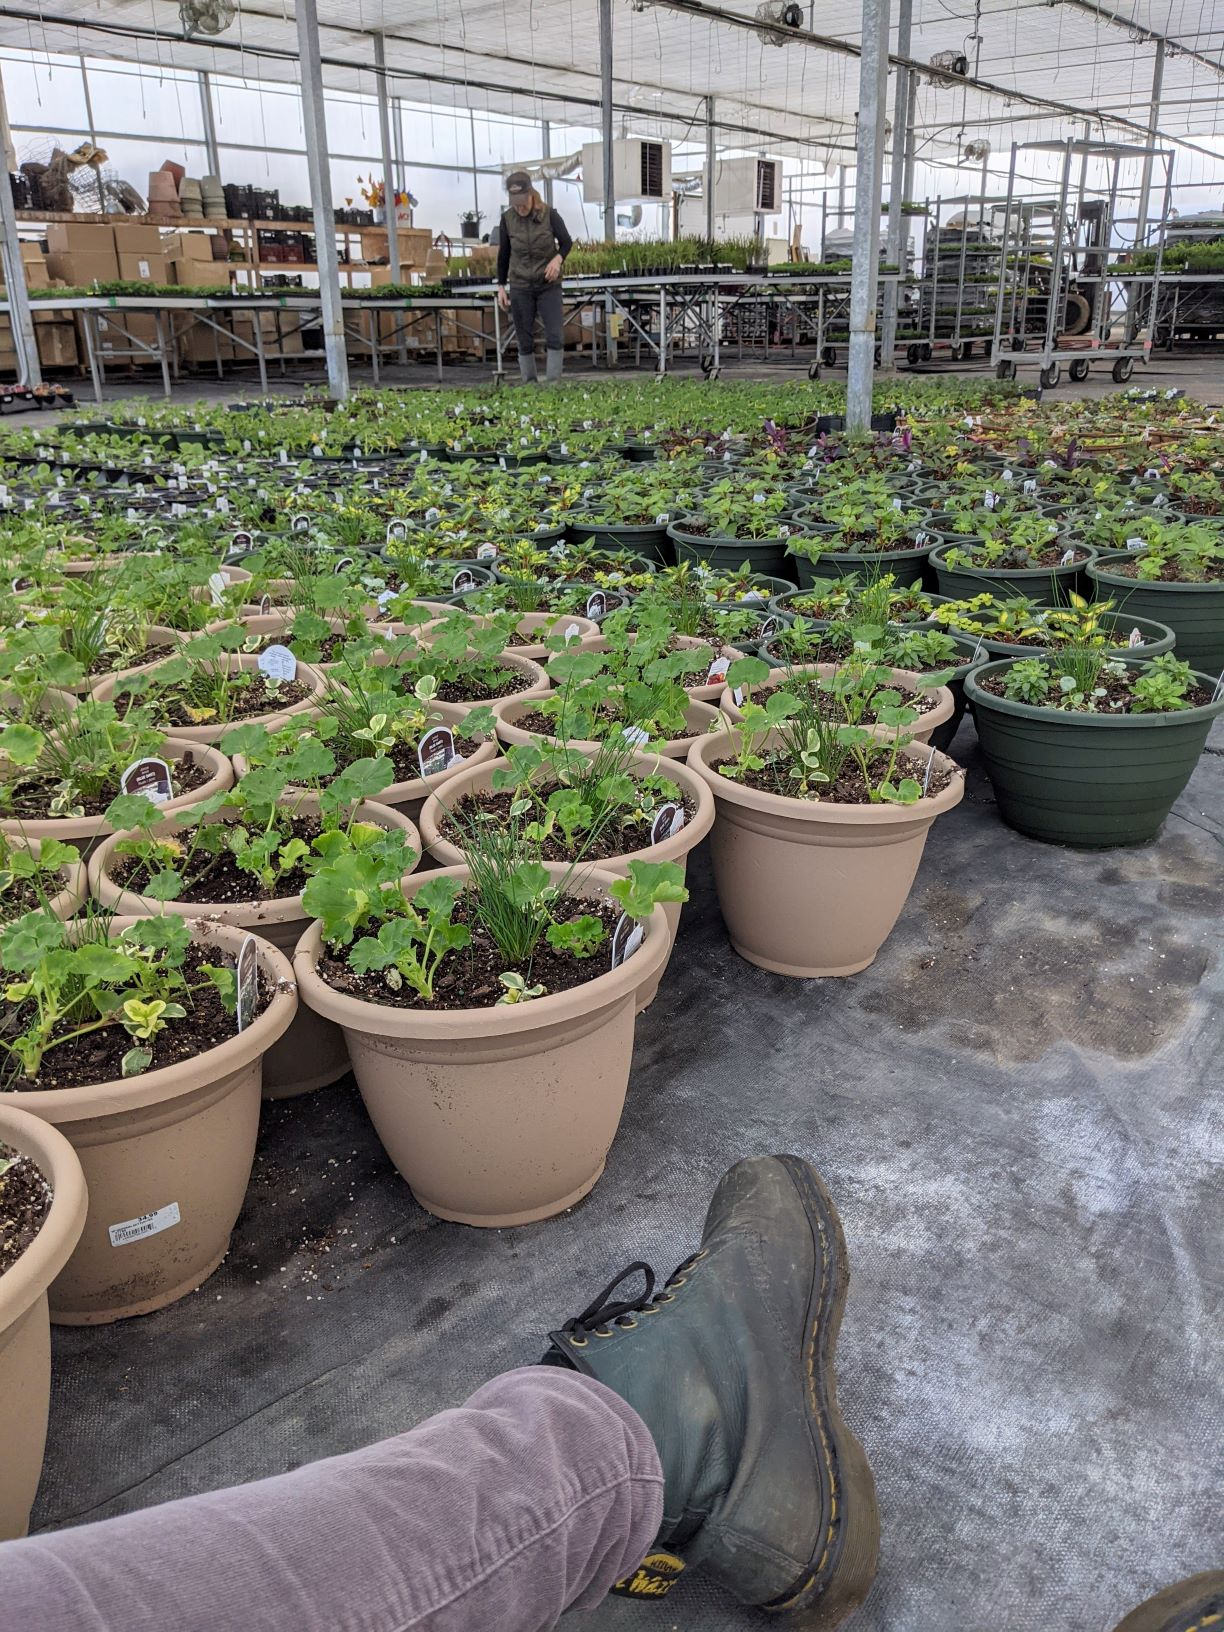 sitting view of the potted containers in the growing greenhouse